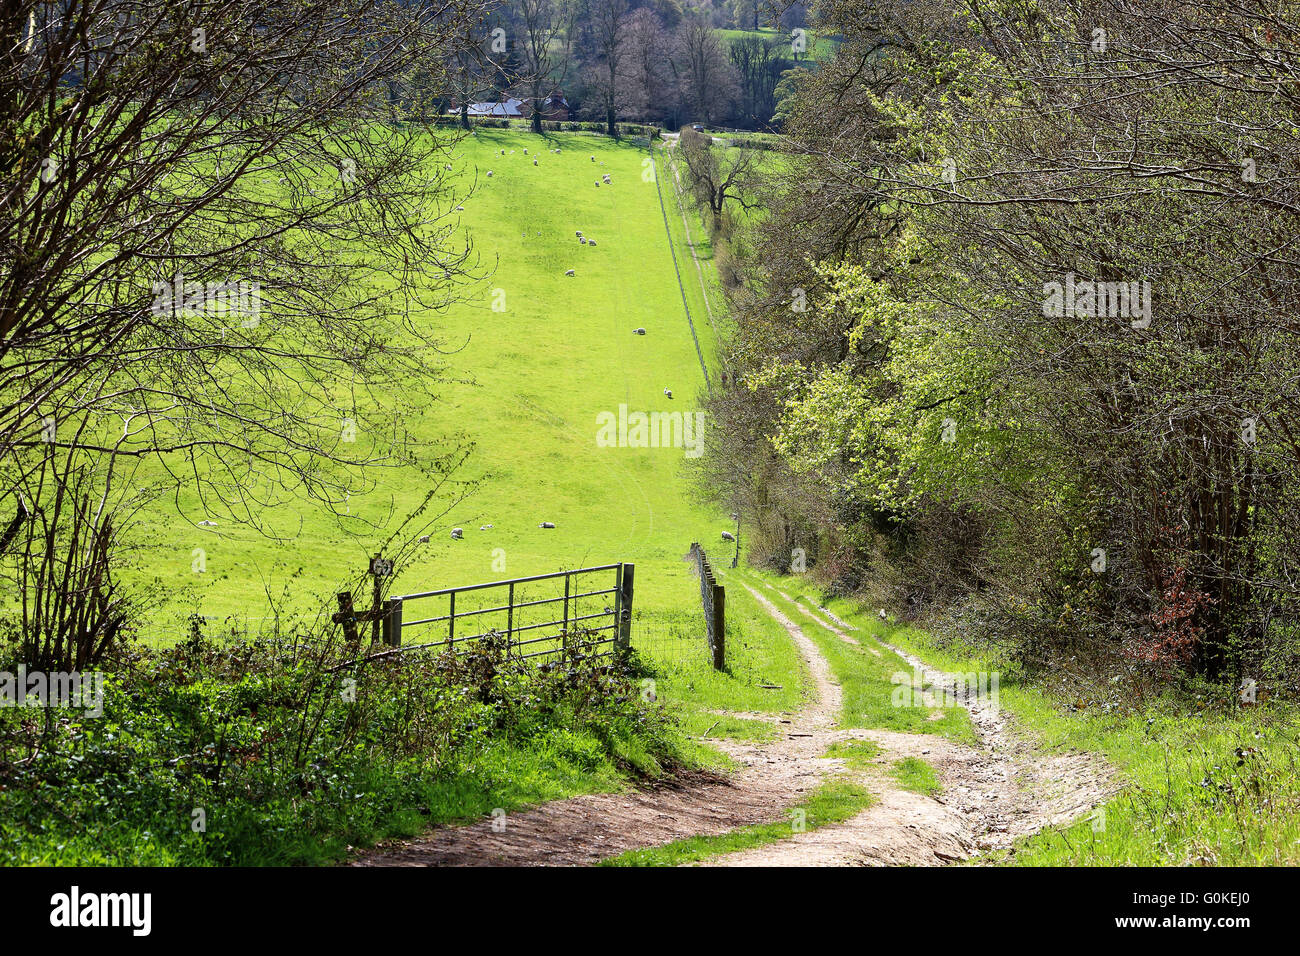 english country footpath in the Chiltern Hills with grazing sheep - Stock Image